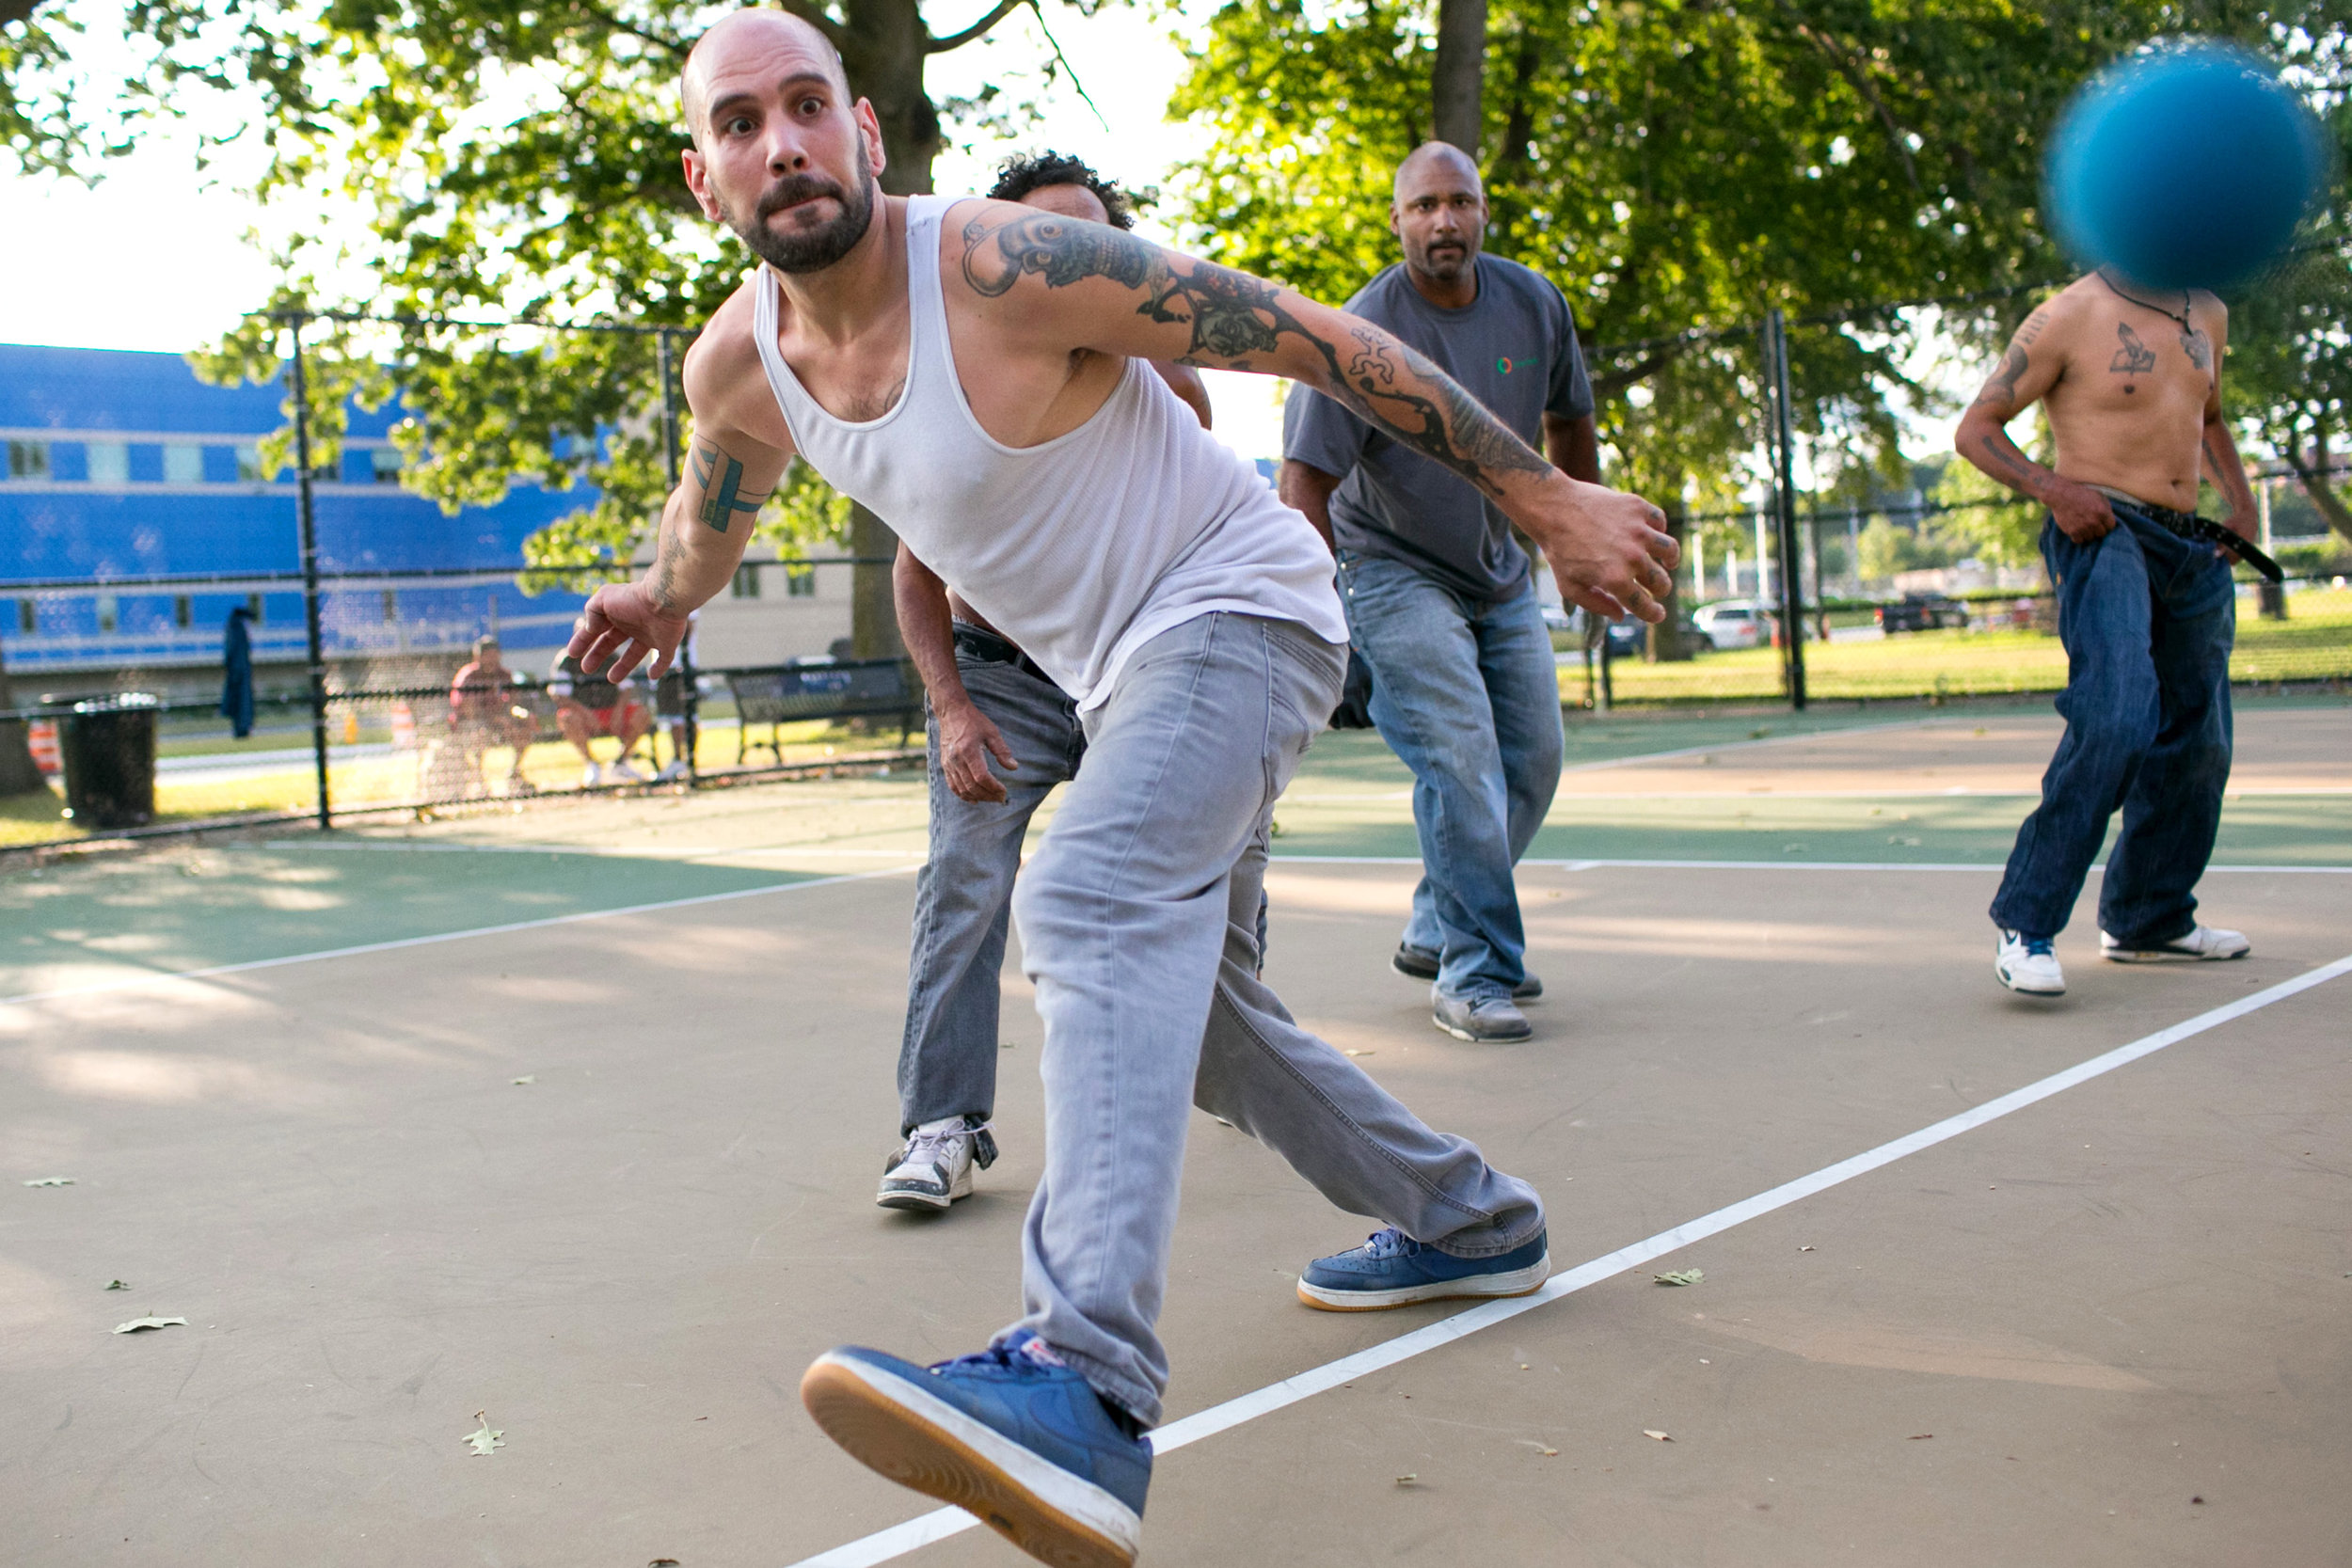 Wilson Montalvo (L) of Worcester chases after the ball during a game of handball with Jose Lopez (2nd-L), Raul Vazquez (2nd-R) and Steven Ramsey (R) at Crompton Park in Worcester, Massachusetts on August 24, 2017.